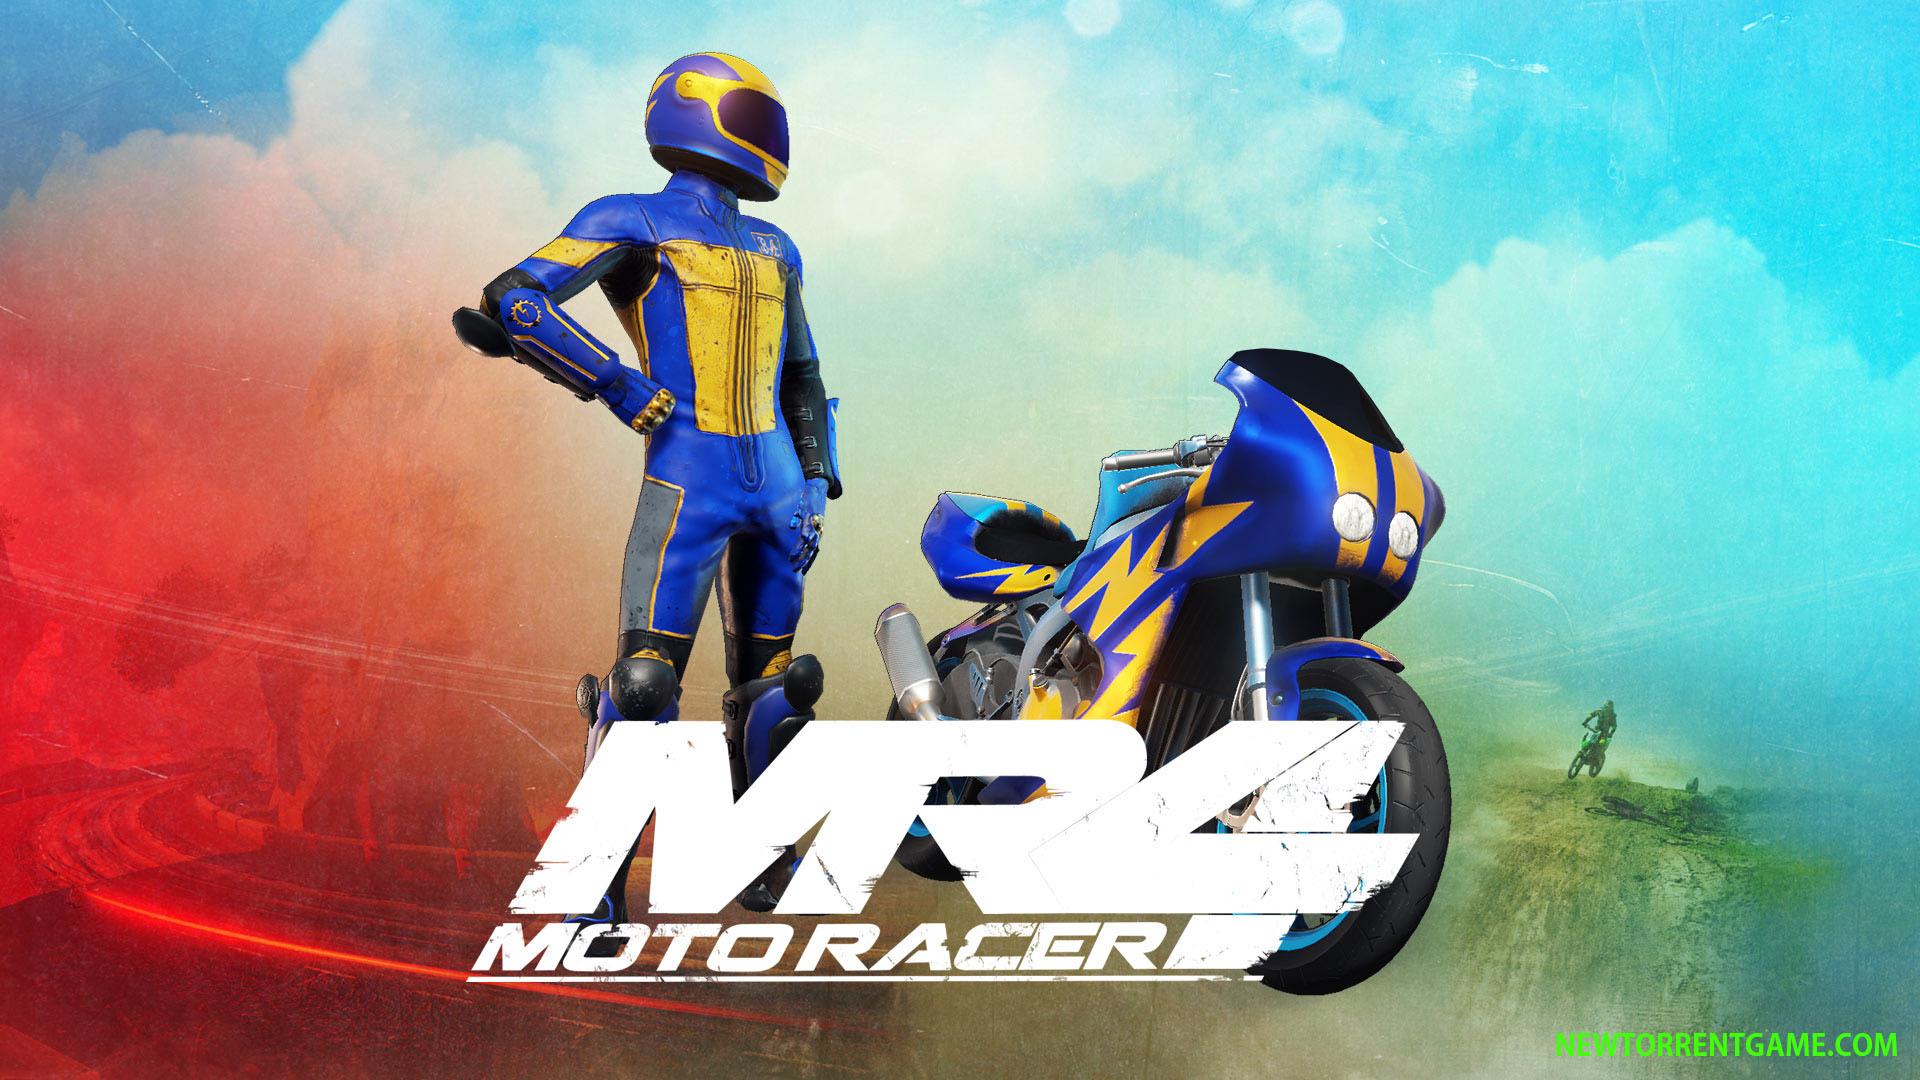 MotoRacer 4 torrent download pc